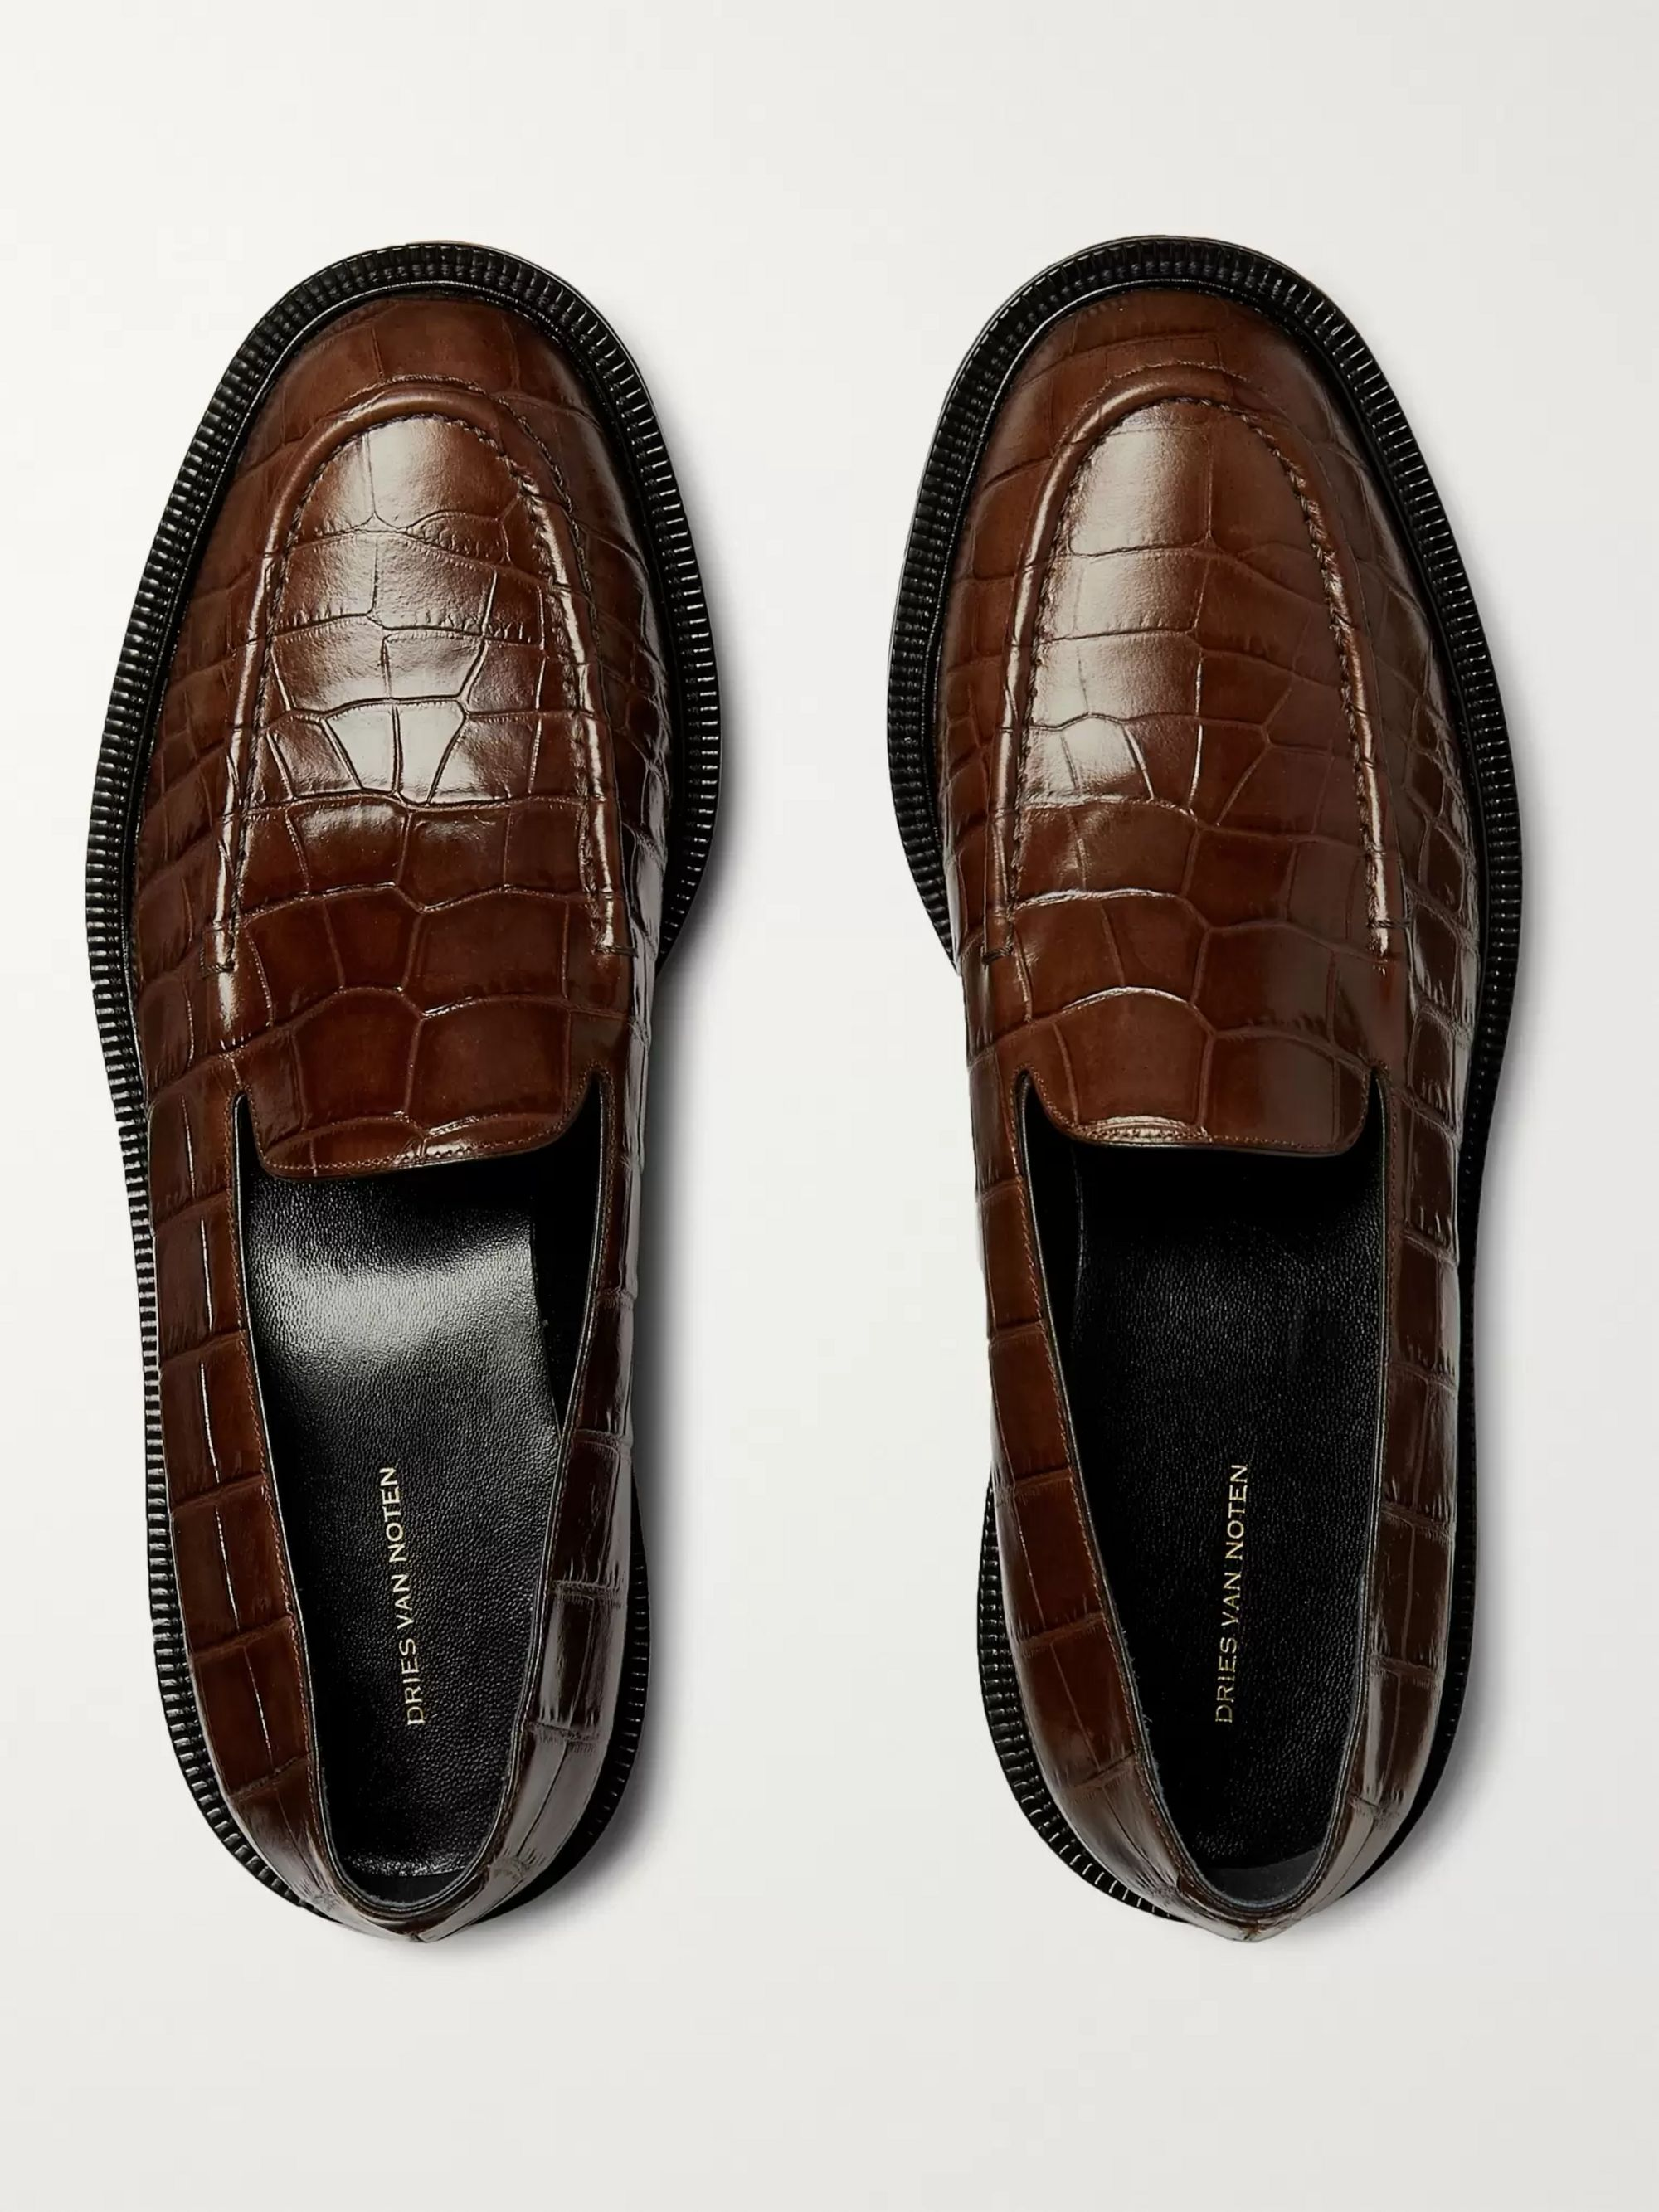 Dries Van Noten Croc-Effect Leather Loafers